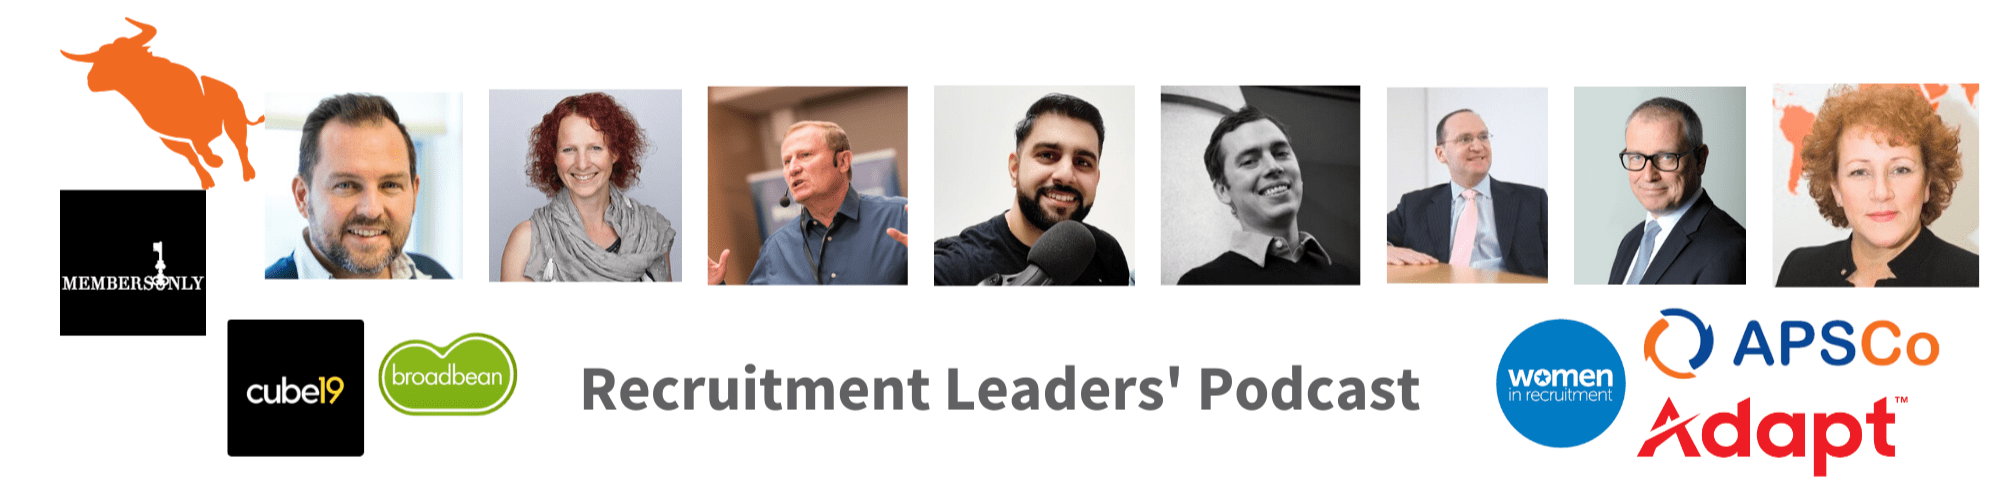 Recruitment Leaders Podcast Greg Savage